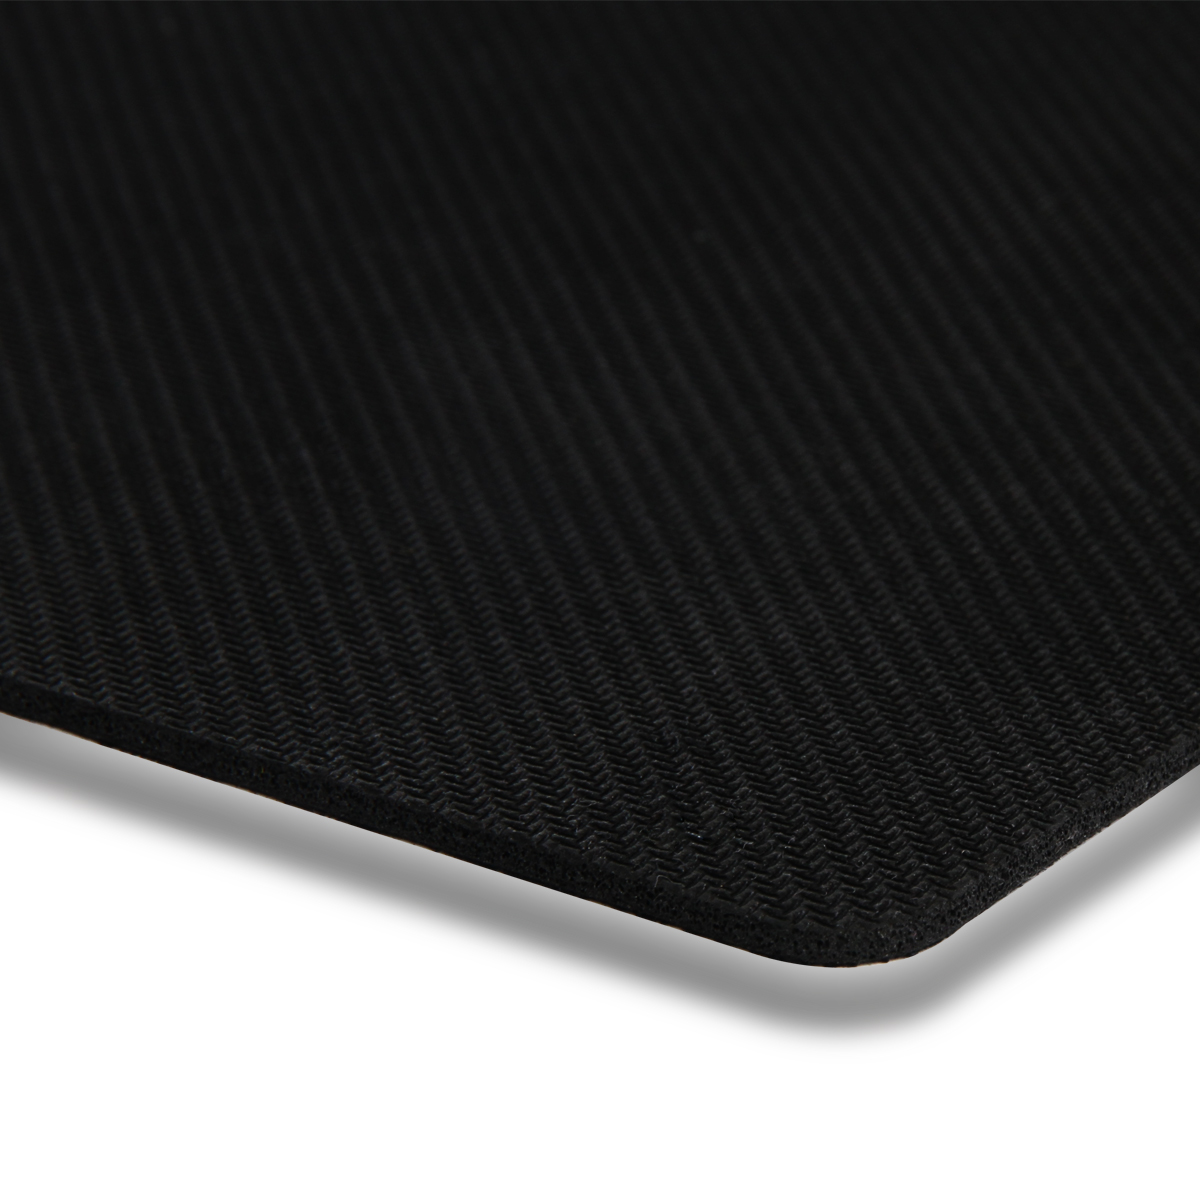 Deli 3692 black padded mouse pad cloth pad rubber material ...